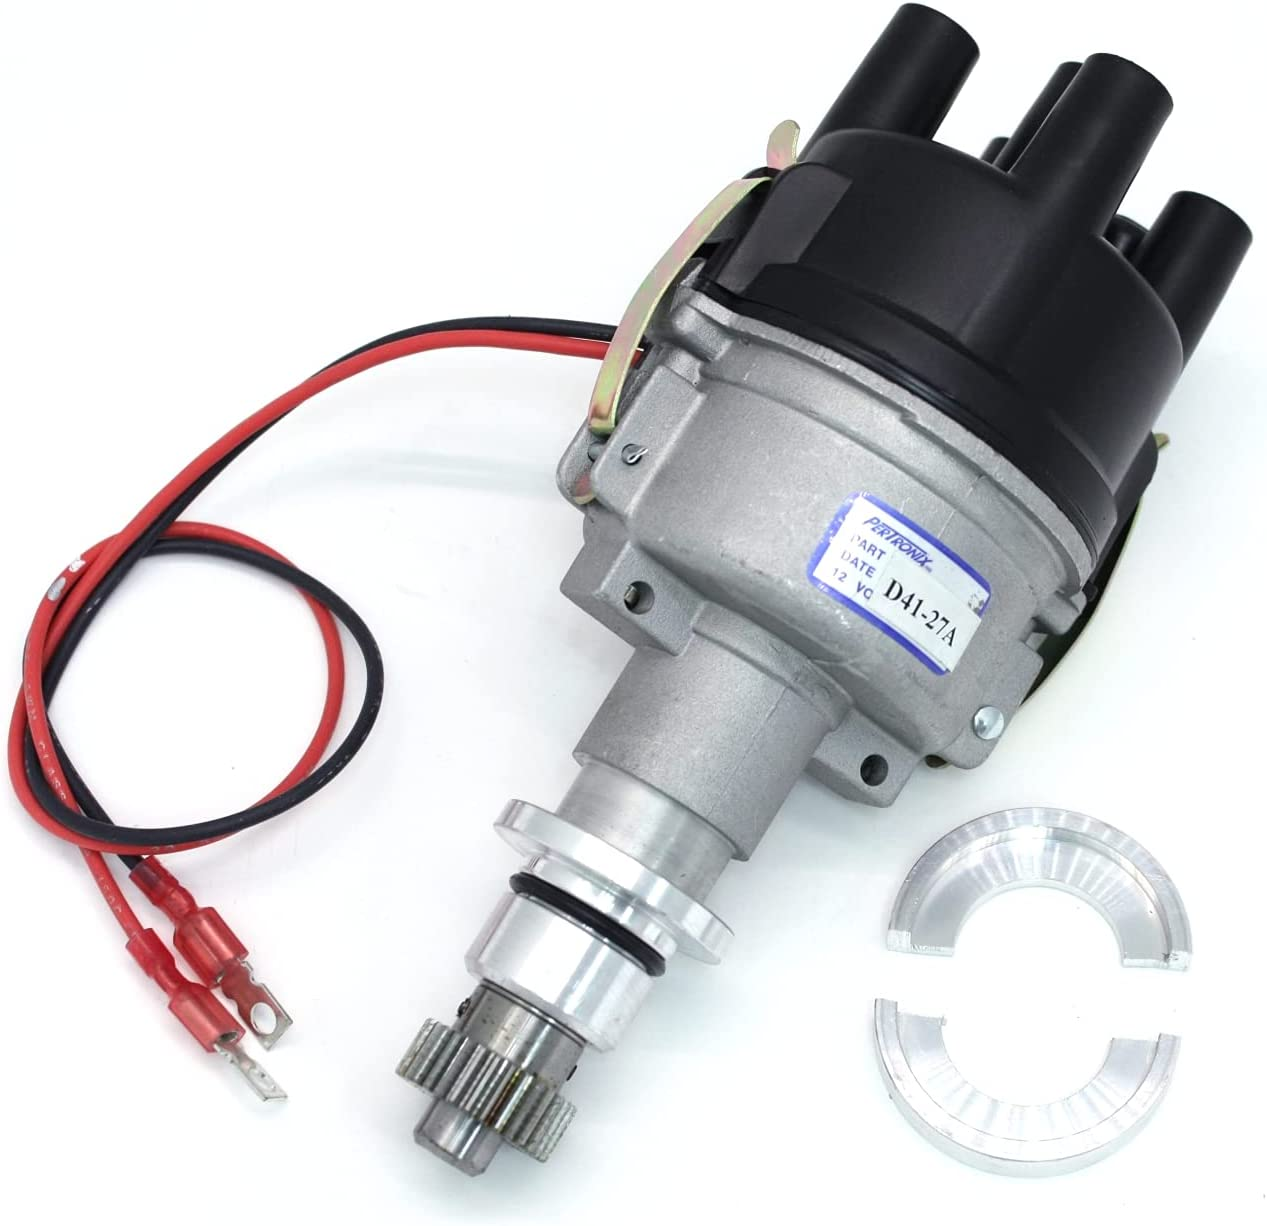 2021 Pertronix D41-27AP6 Distributor Industrial Cylinder 4 years warranty for IBT-41